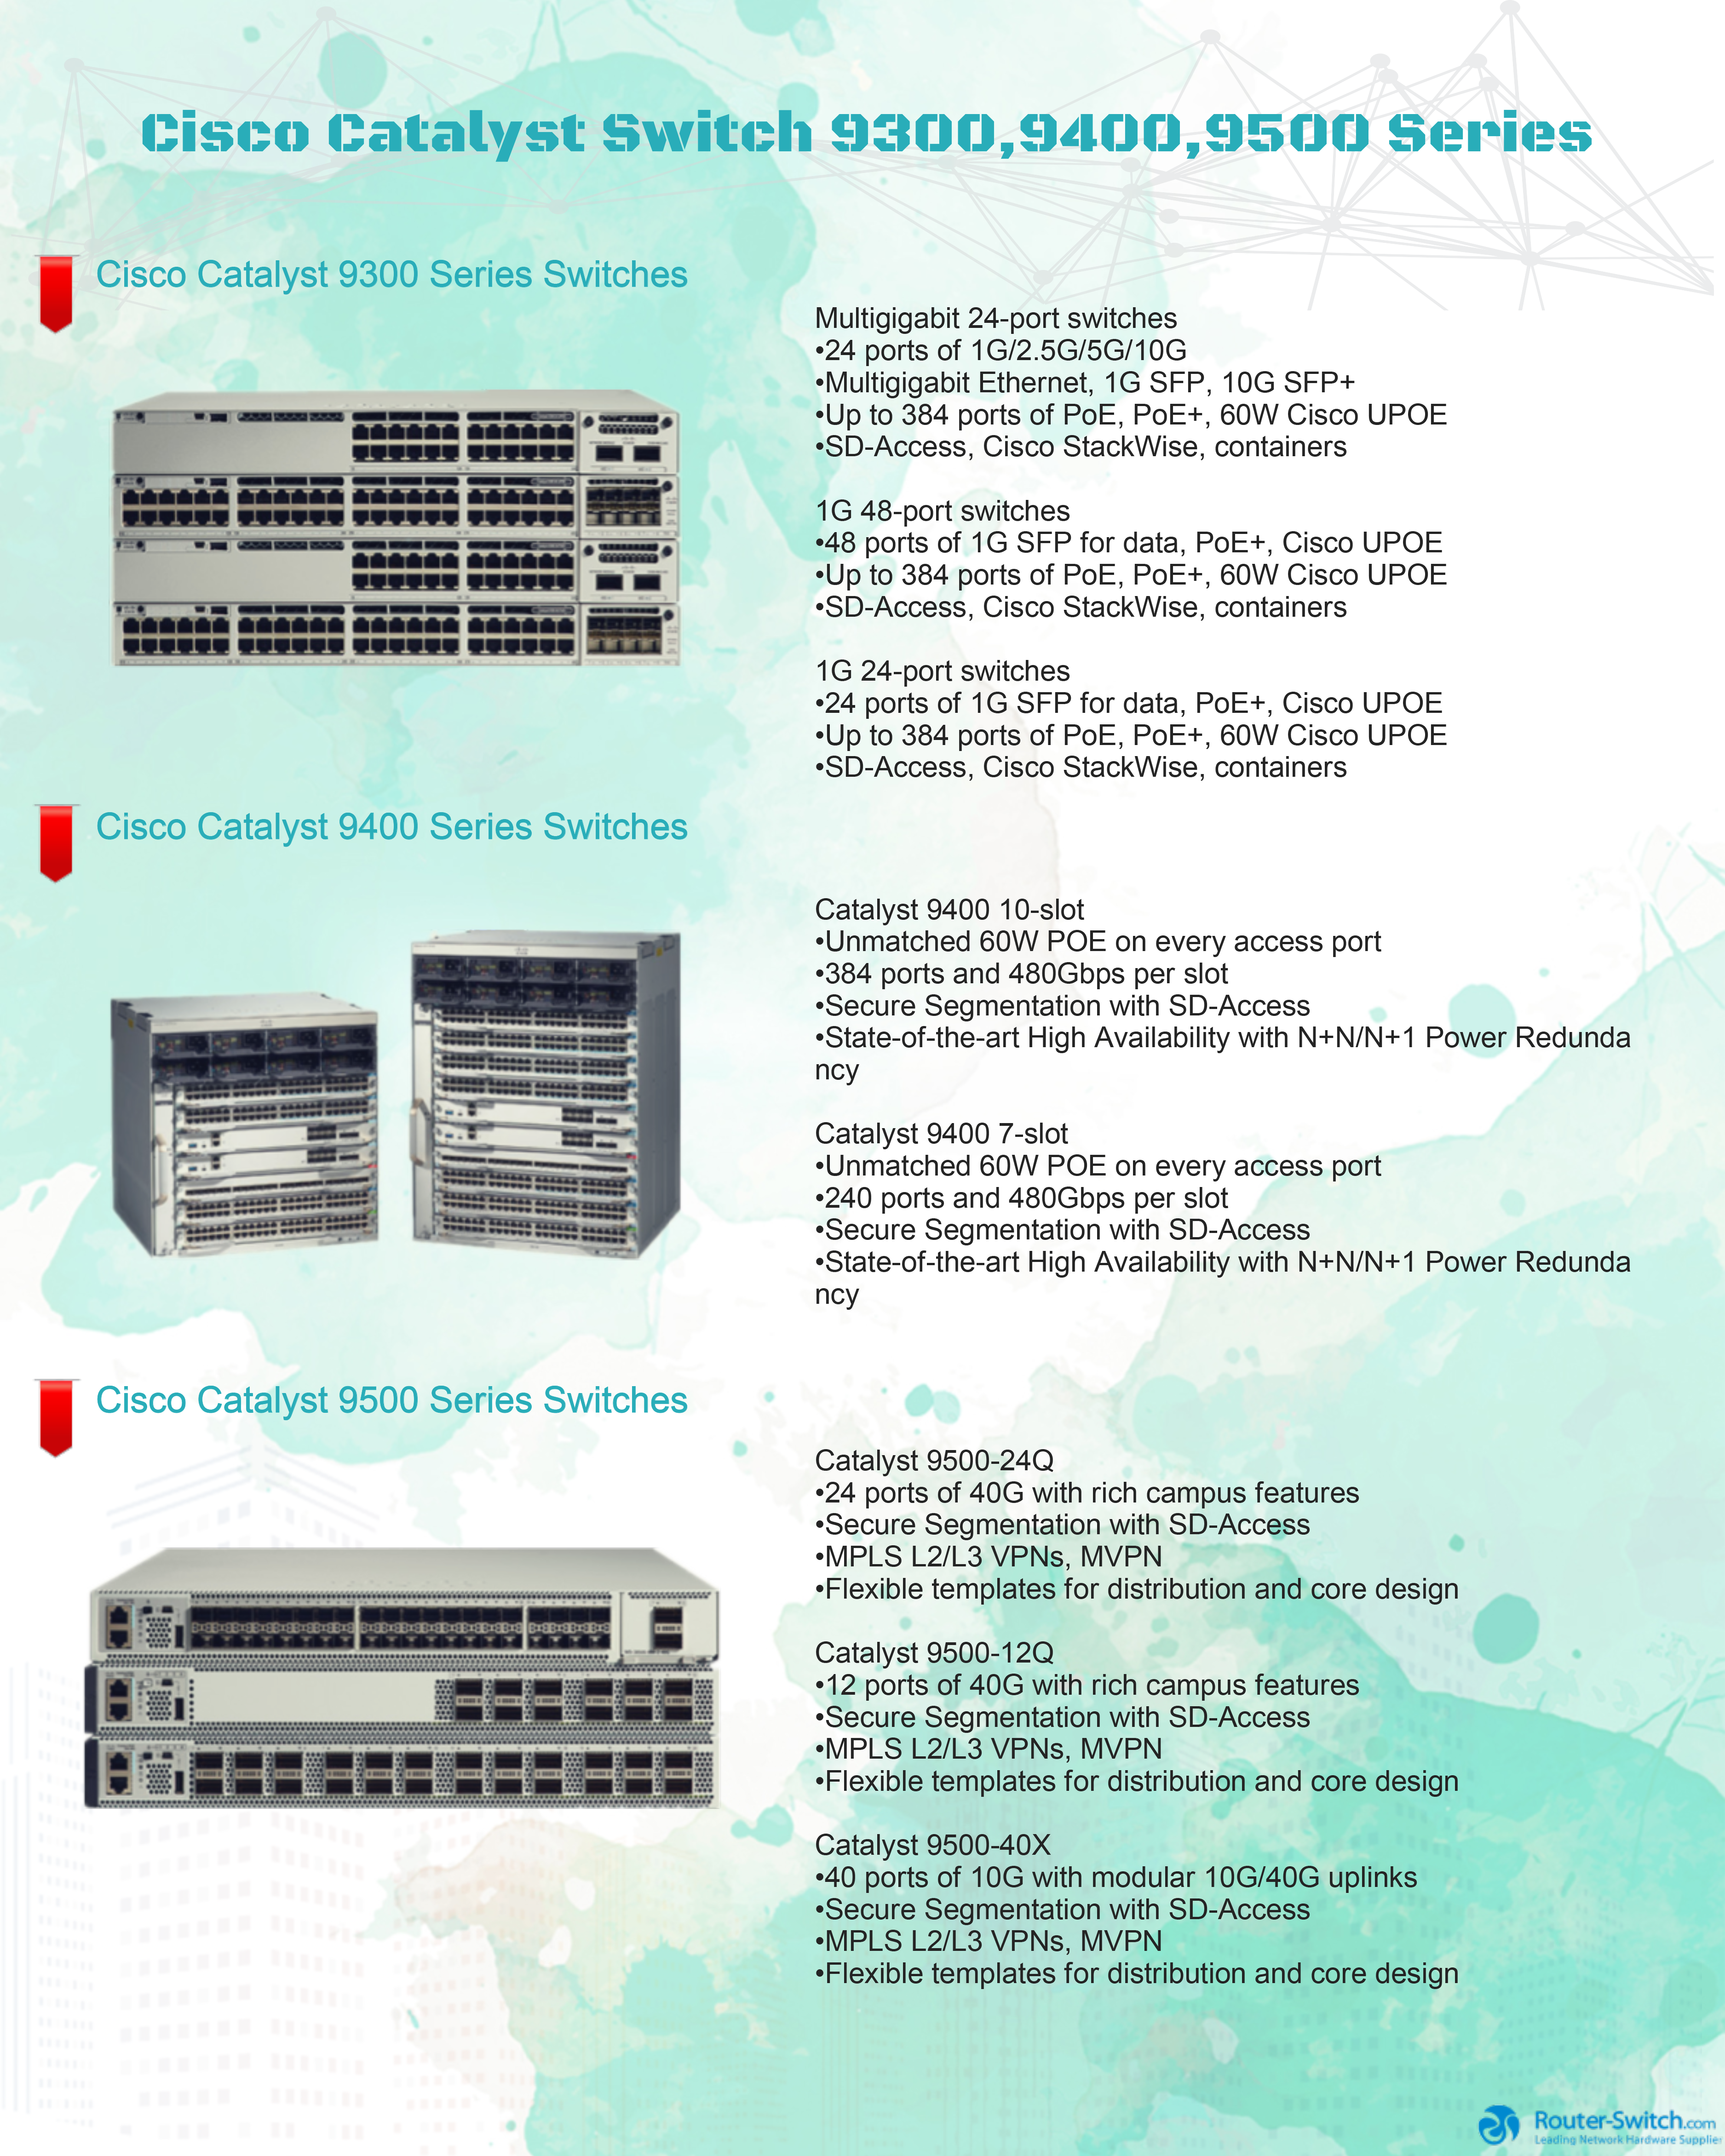 Cisco Catalyst 9300 9400 9500 Series Switches Model Introductions